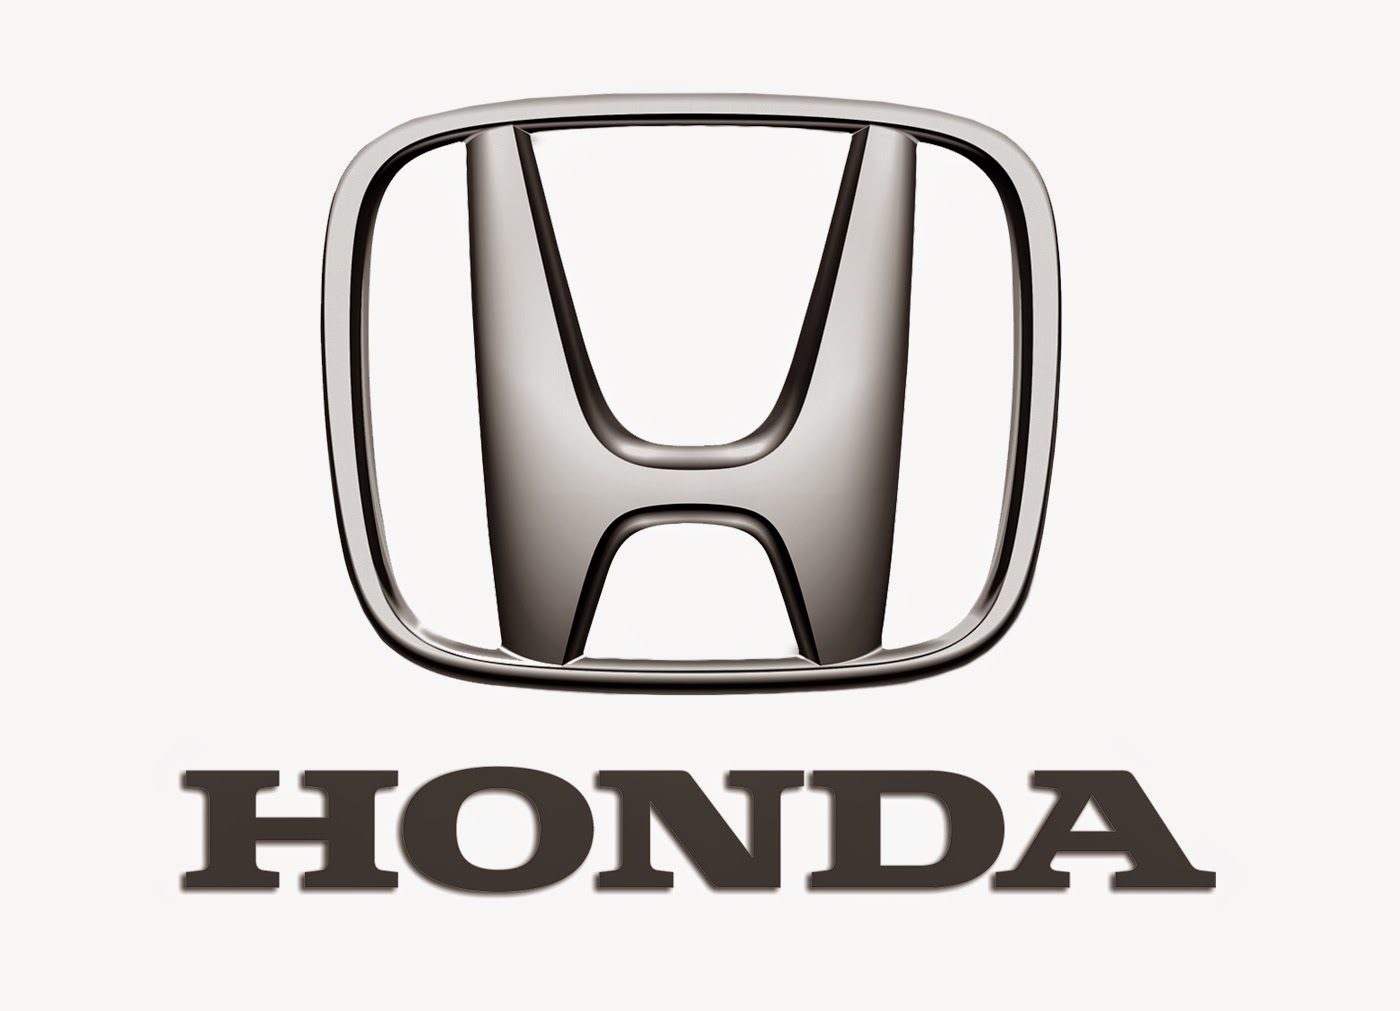 honda logo. Black Bedroom Furniture Sets. Home Design Ideas